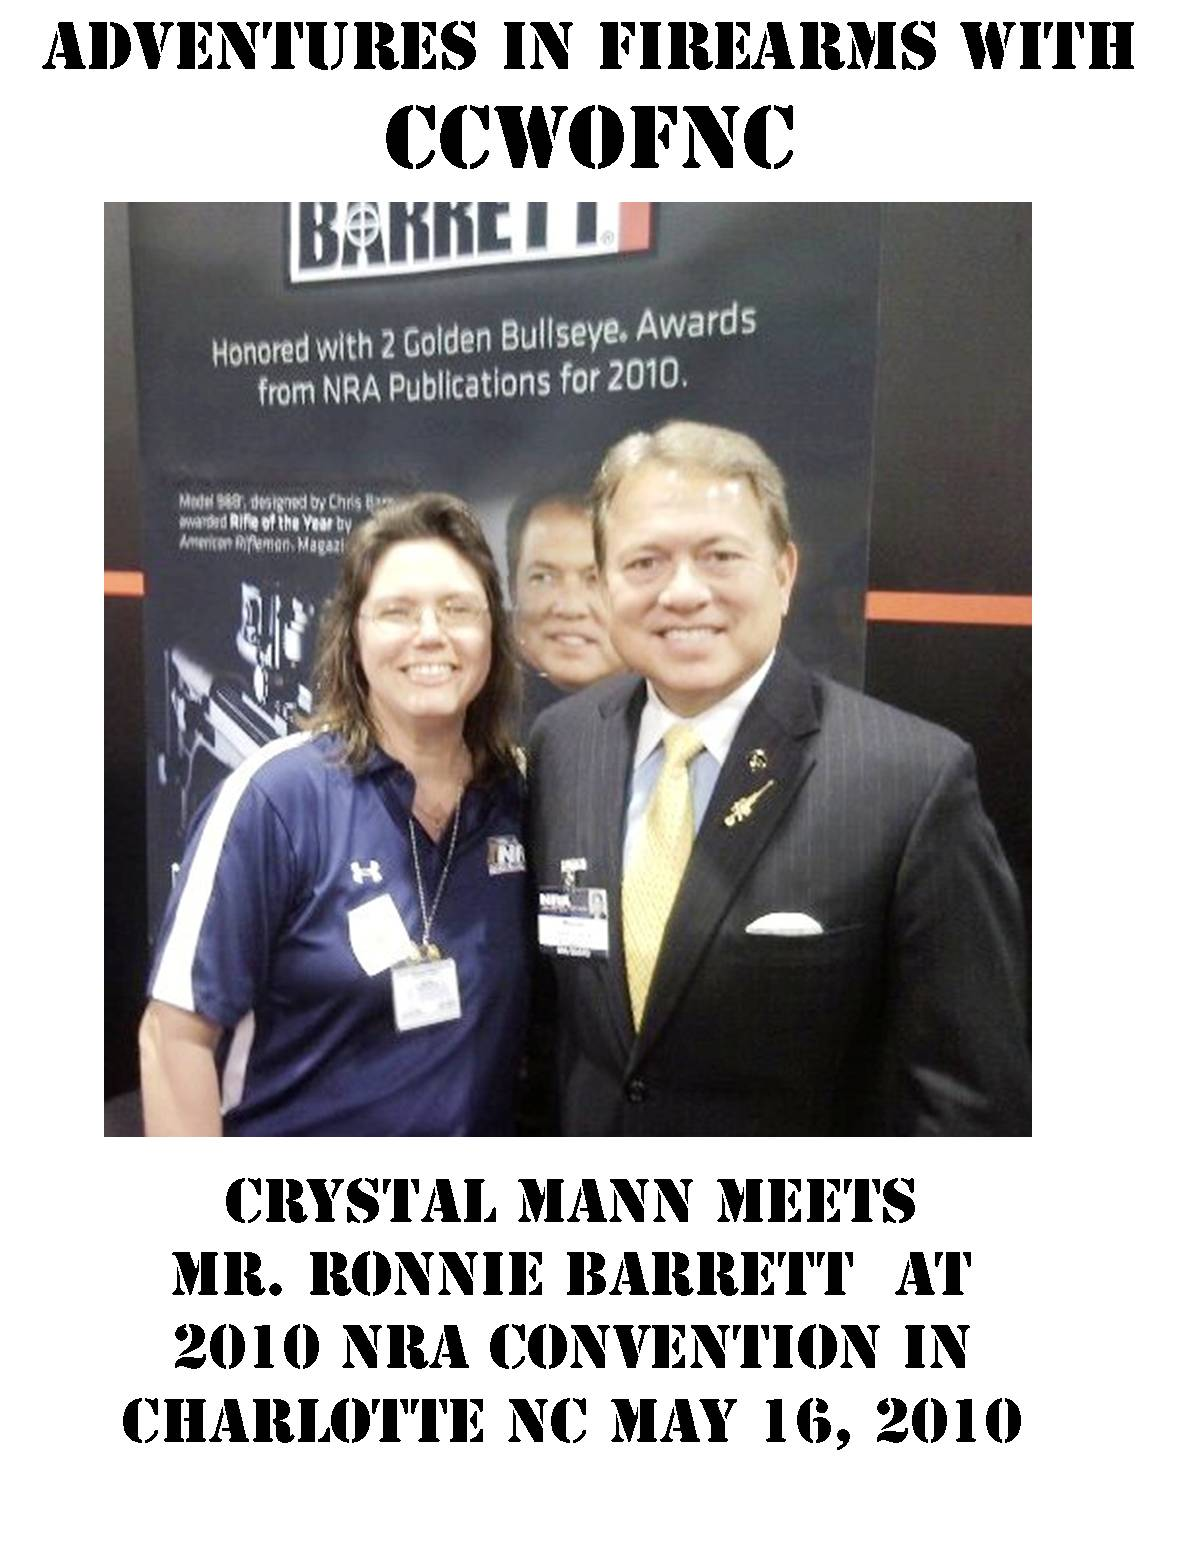 Crystal & Mr. Barrett @ the NRA convention in Charlotte 2010!